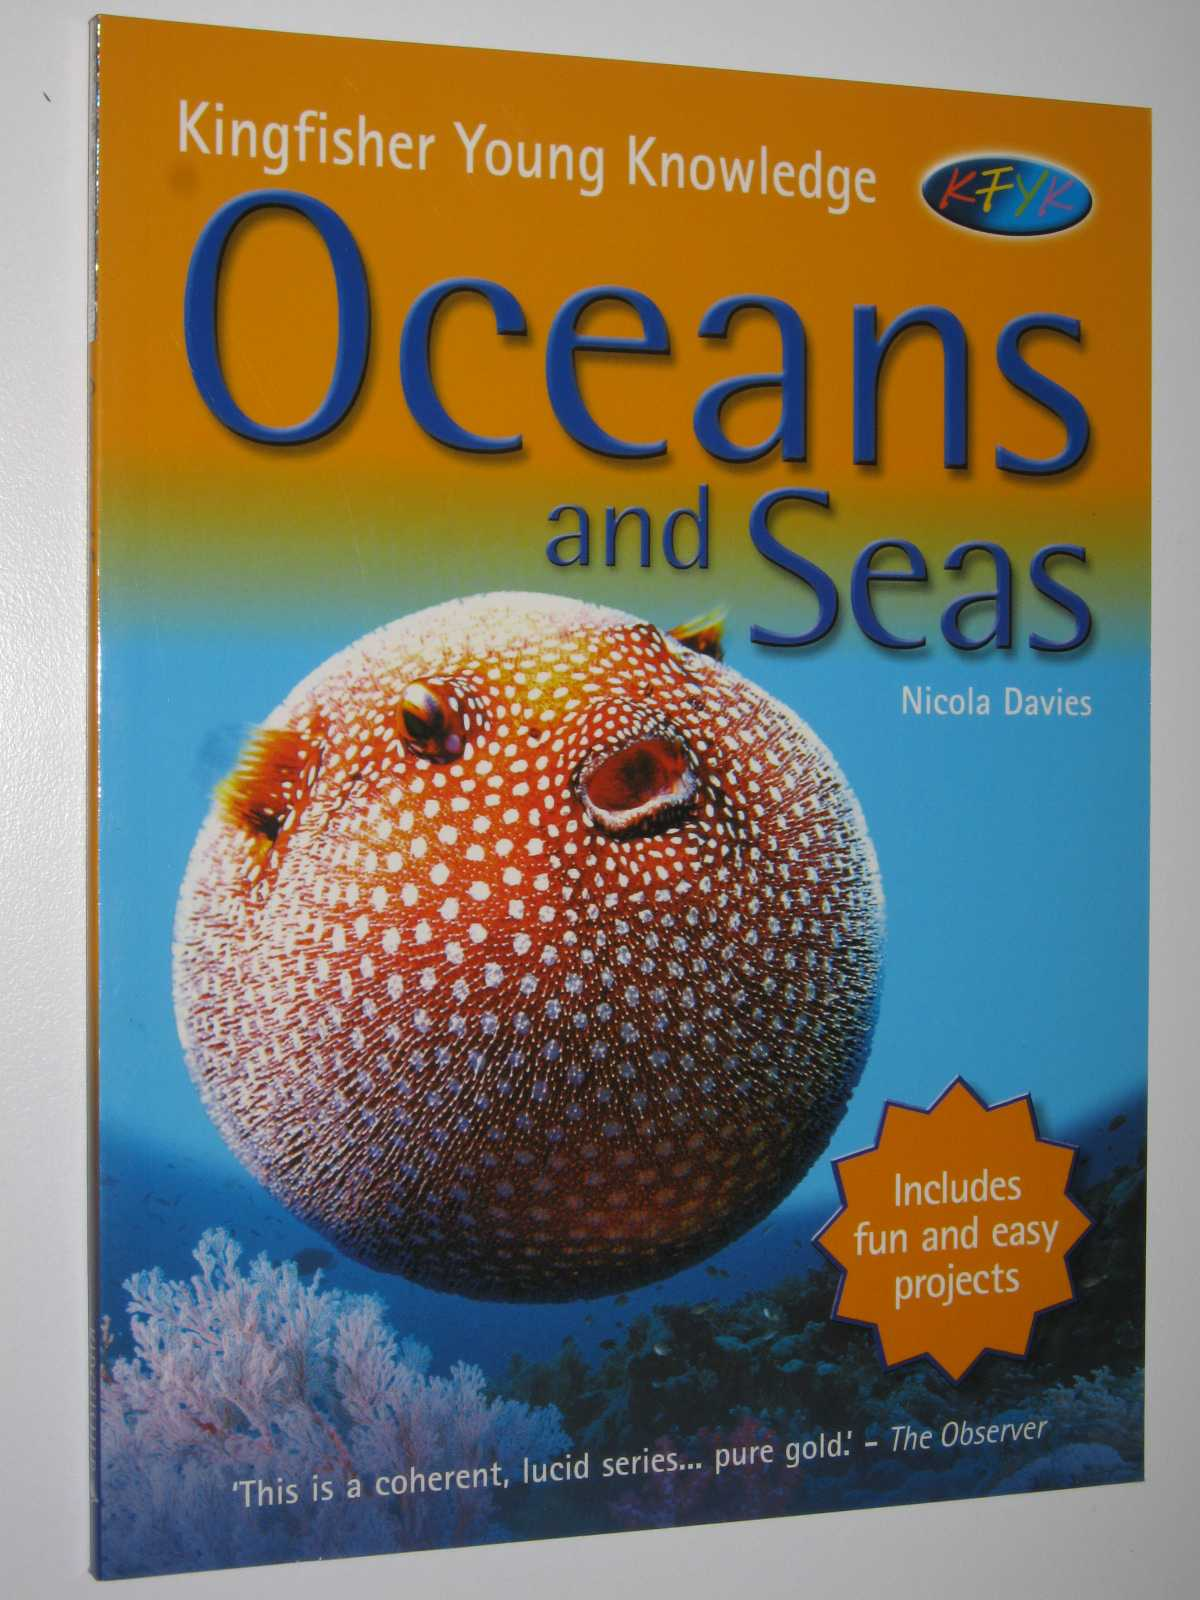 Image for Oceans and Seas - Kingfisher Young Knowledge Series